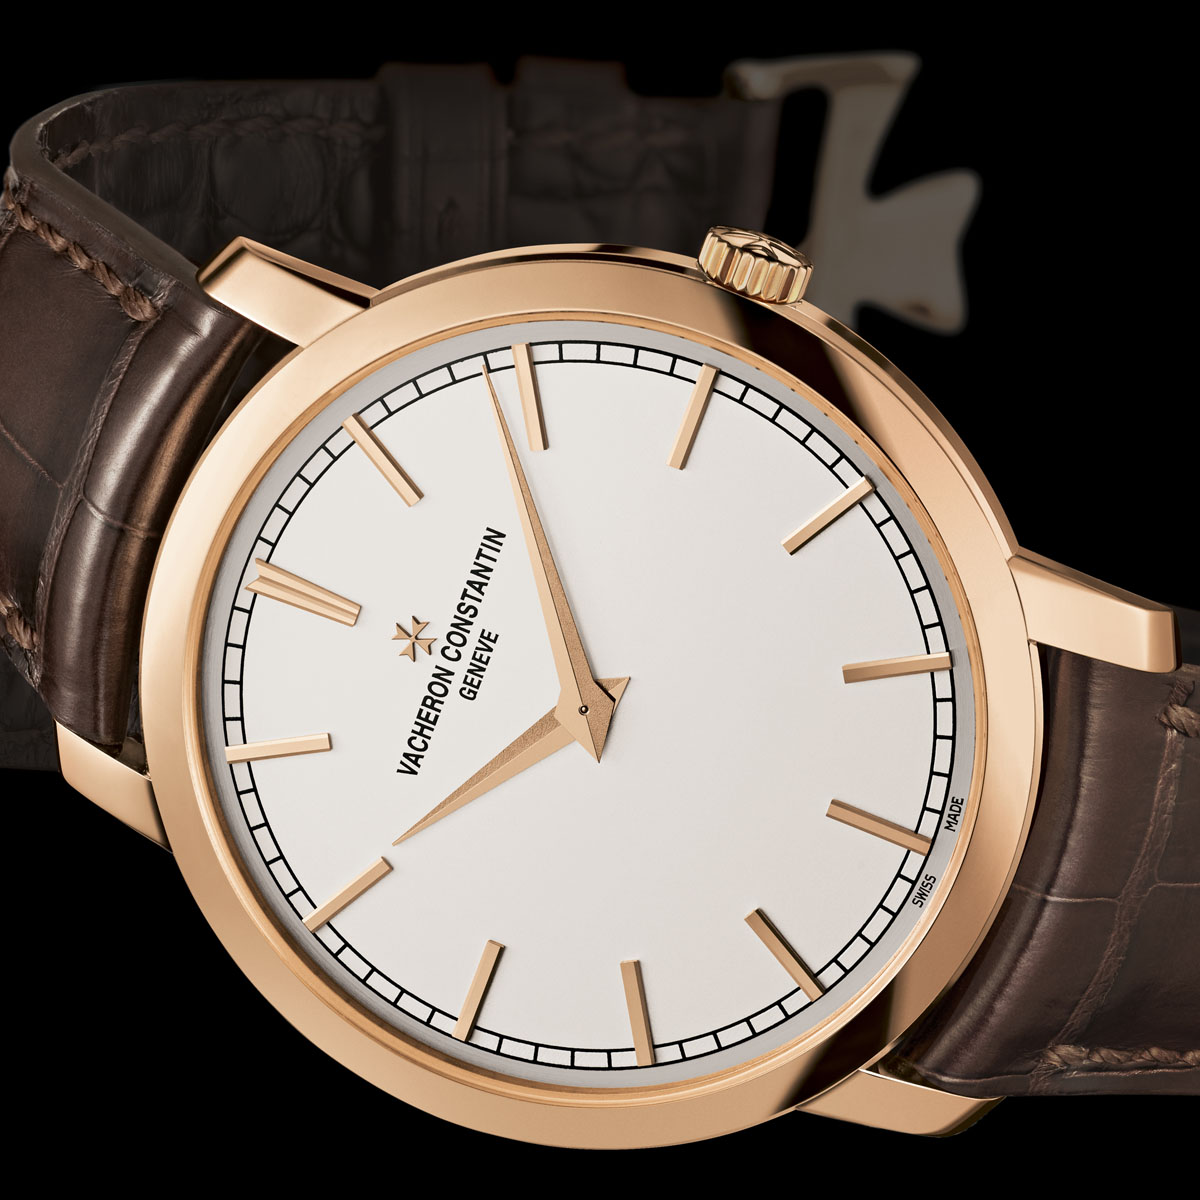 Traditional And Sophisticated Vacheron Constantin Patrimony Replica Watch Review